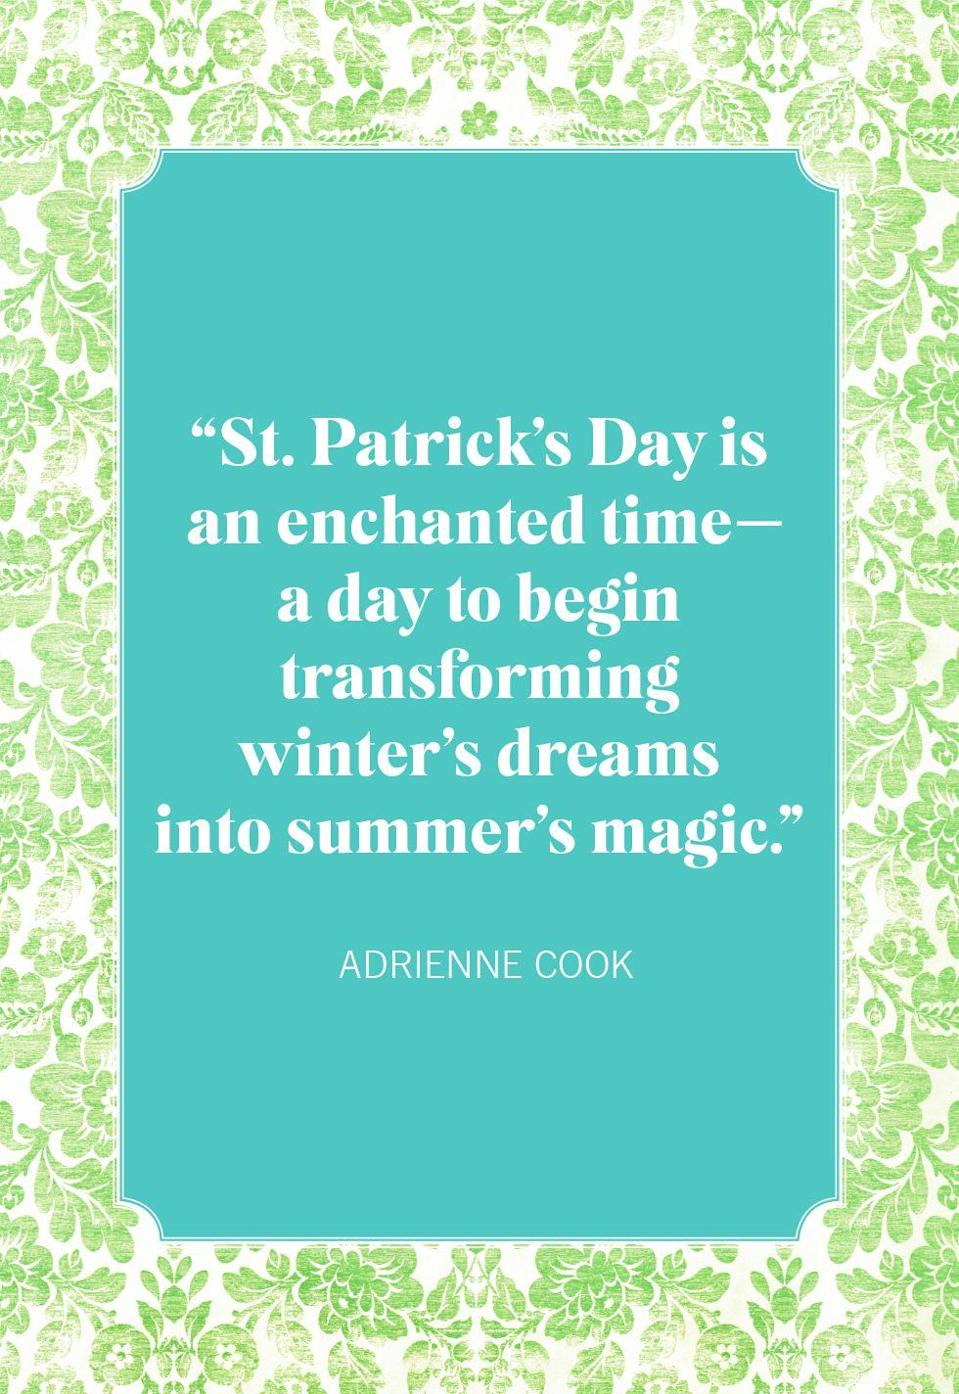 "<p>""St. Patrick's Day is an enchanted time—a day to begin transforming winter's dreams into summer's magic.""</p>"